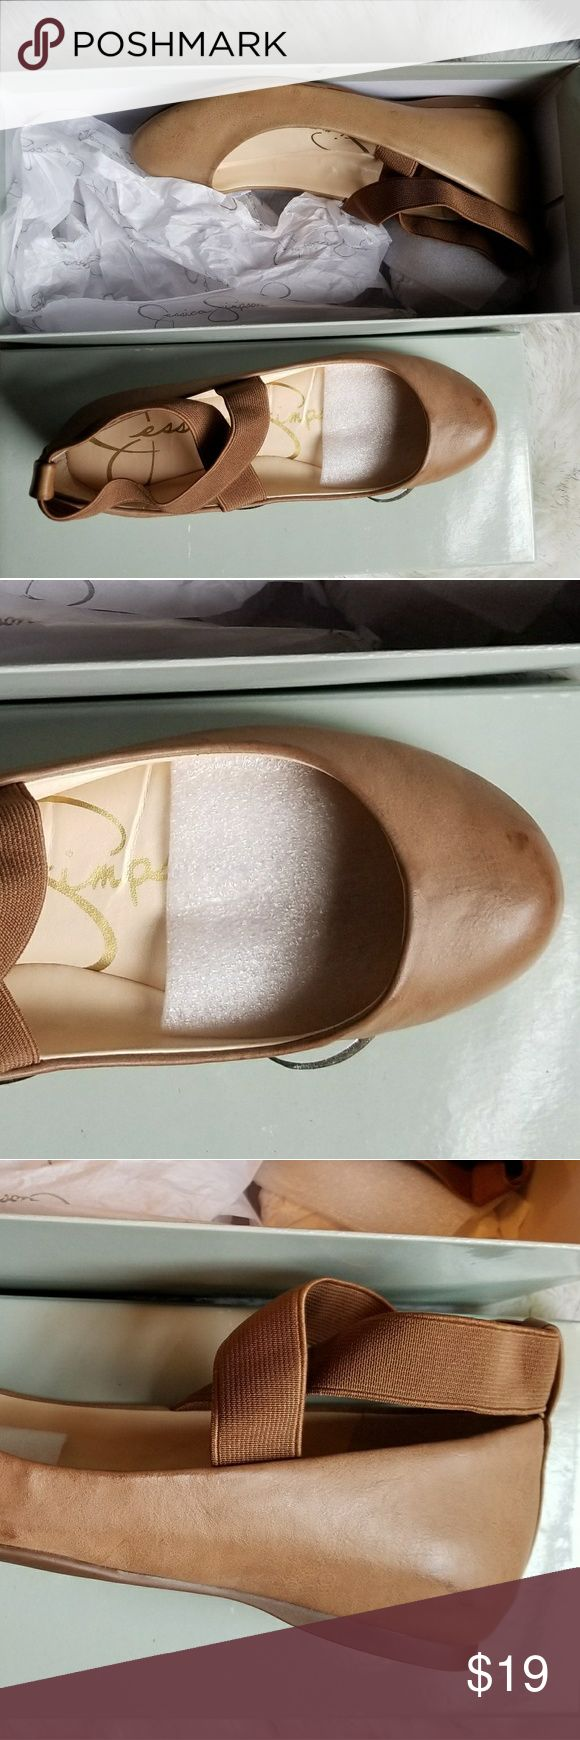 "Jessica Simpson Eureka Mandays Ballet shoe Cafe Cafe colored, never worn, ballet shoes by Jessica Simpson. Bought for my sister who wears a solid size 6 said they were a little tight. They have distinct dye marks for character. Darker tone of ""nude"" tan color. Elastic straps. Jessica Simpson Shoes Flats & Loafers"